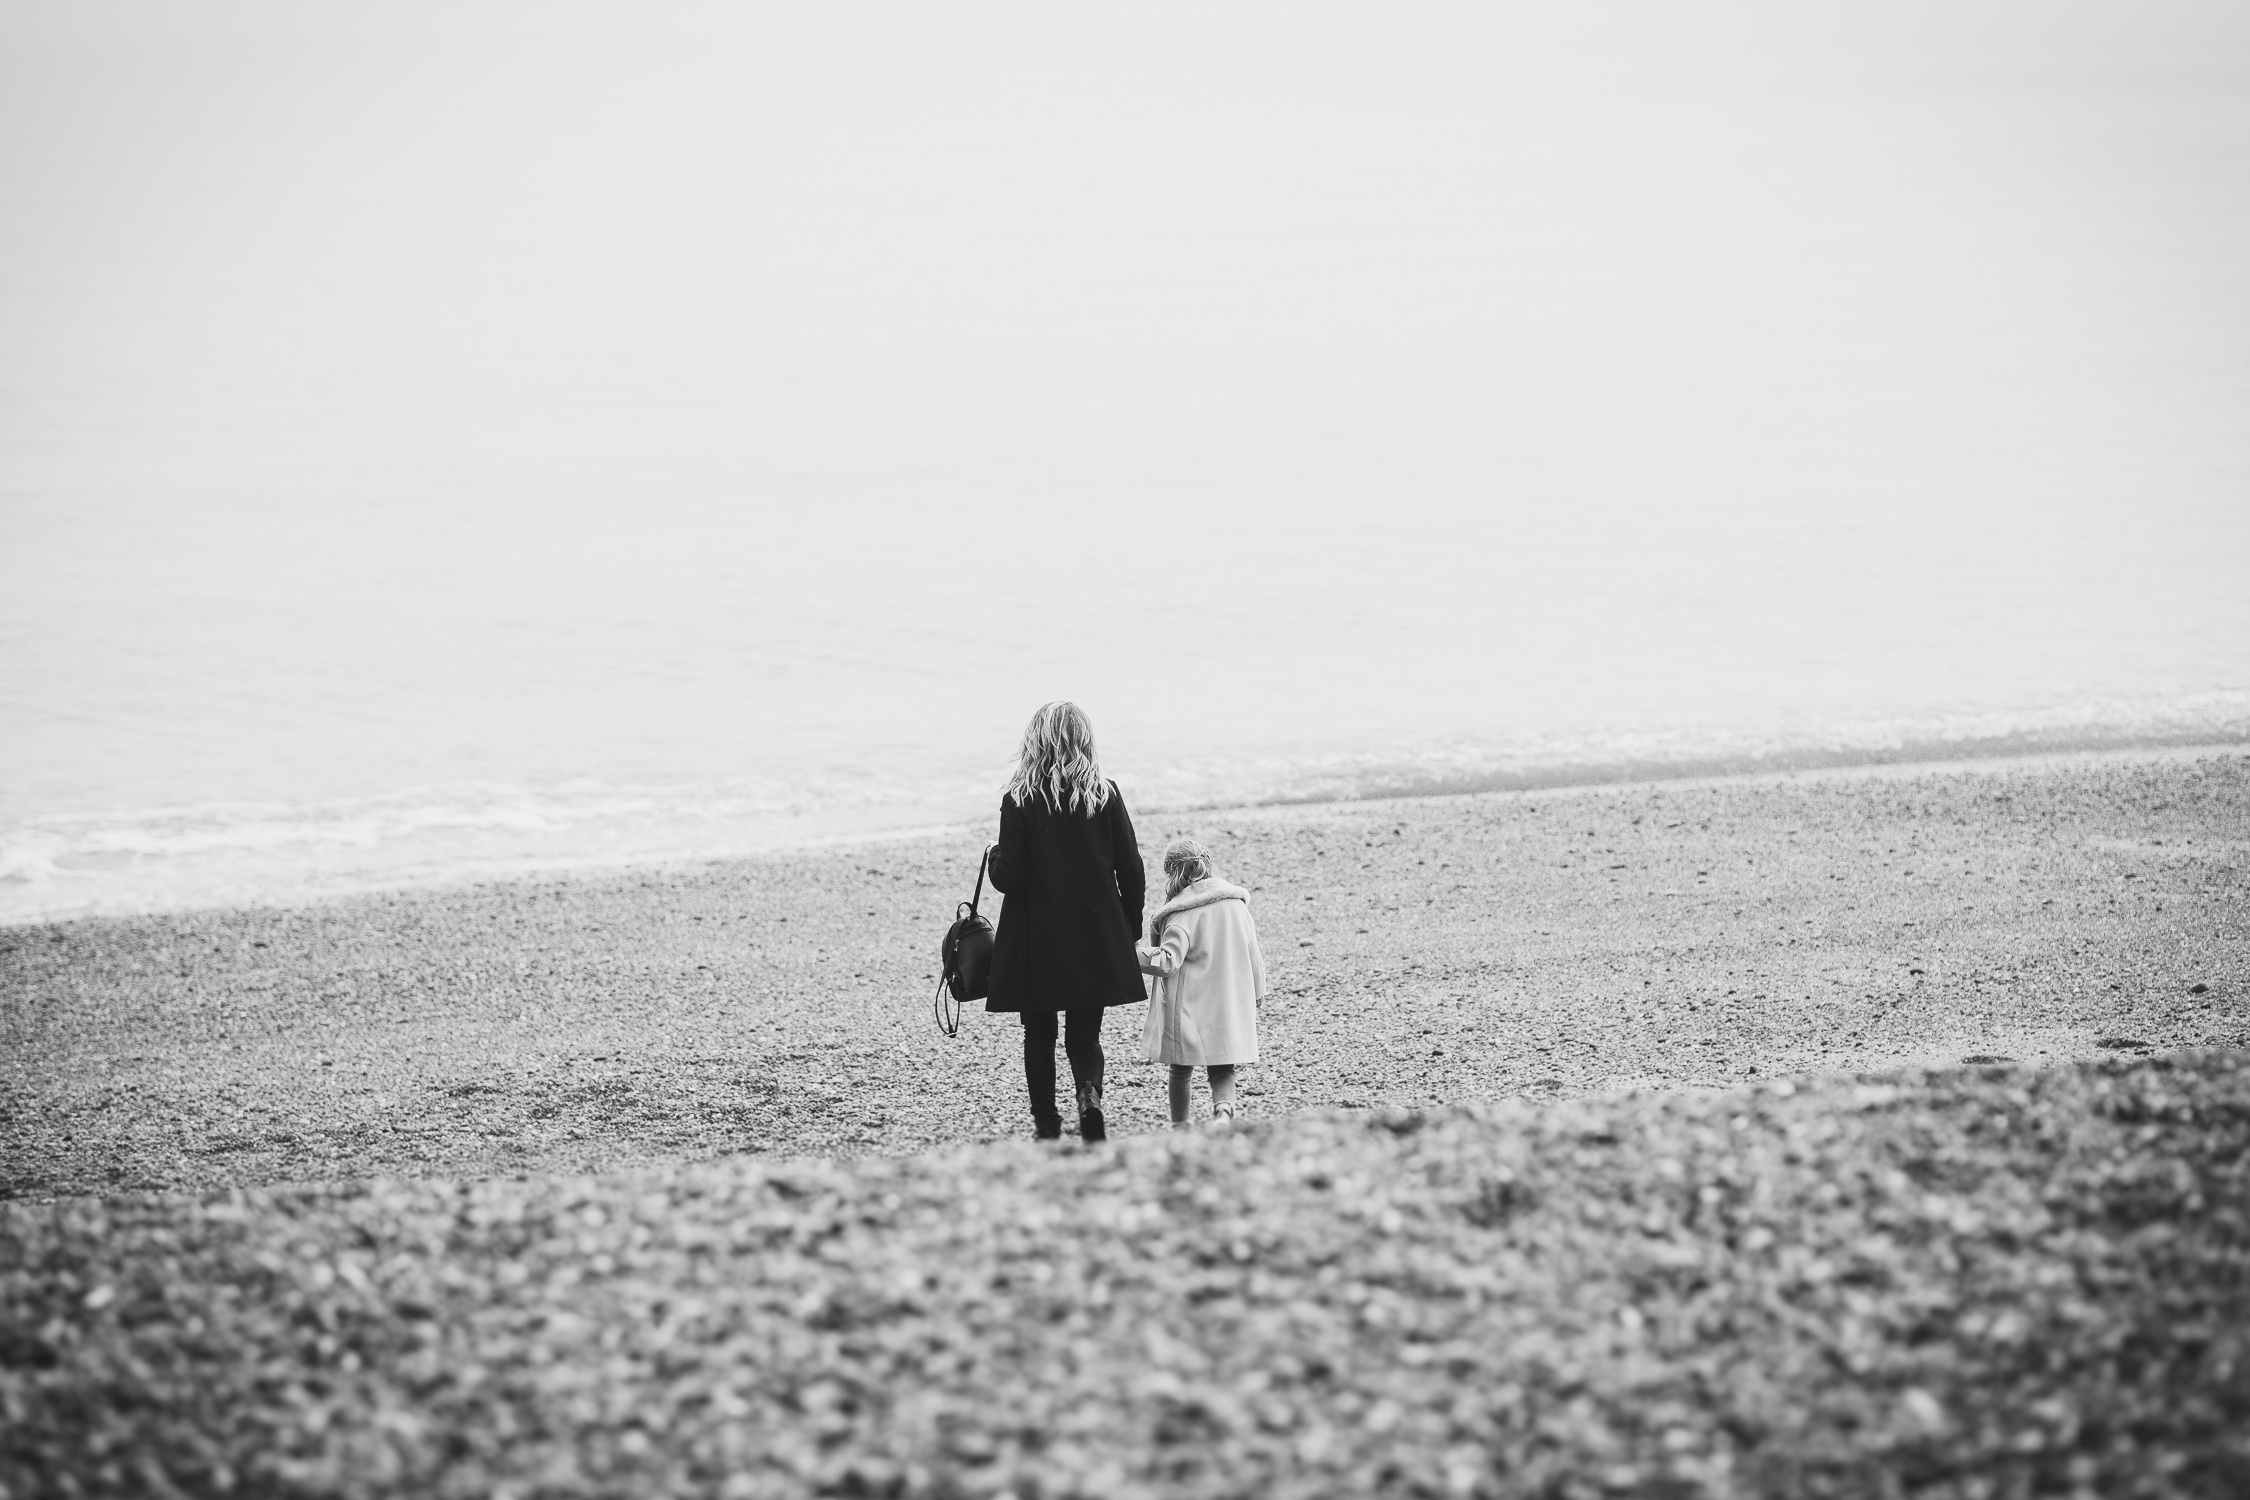 Mum and Daughter Walking Together in Brighton Beach Vilcinskaite Photo